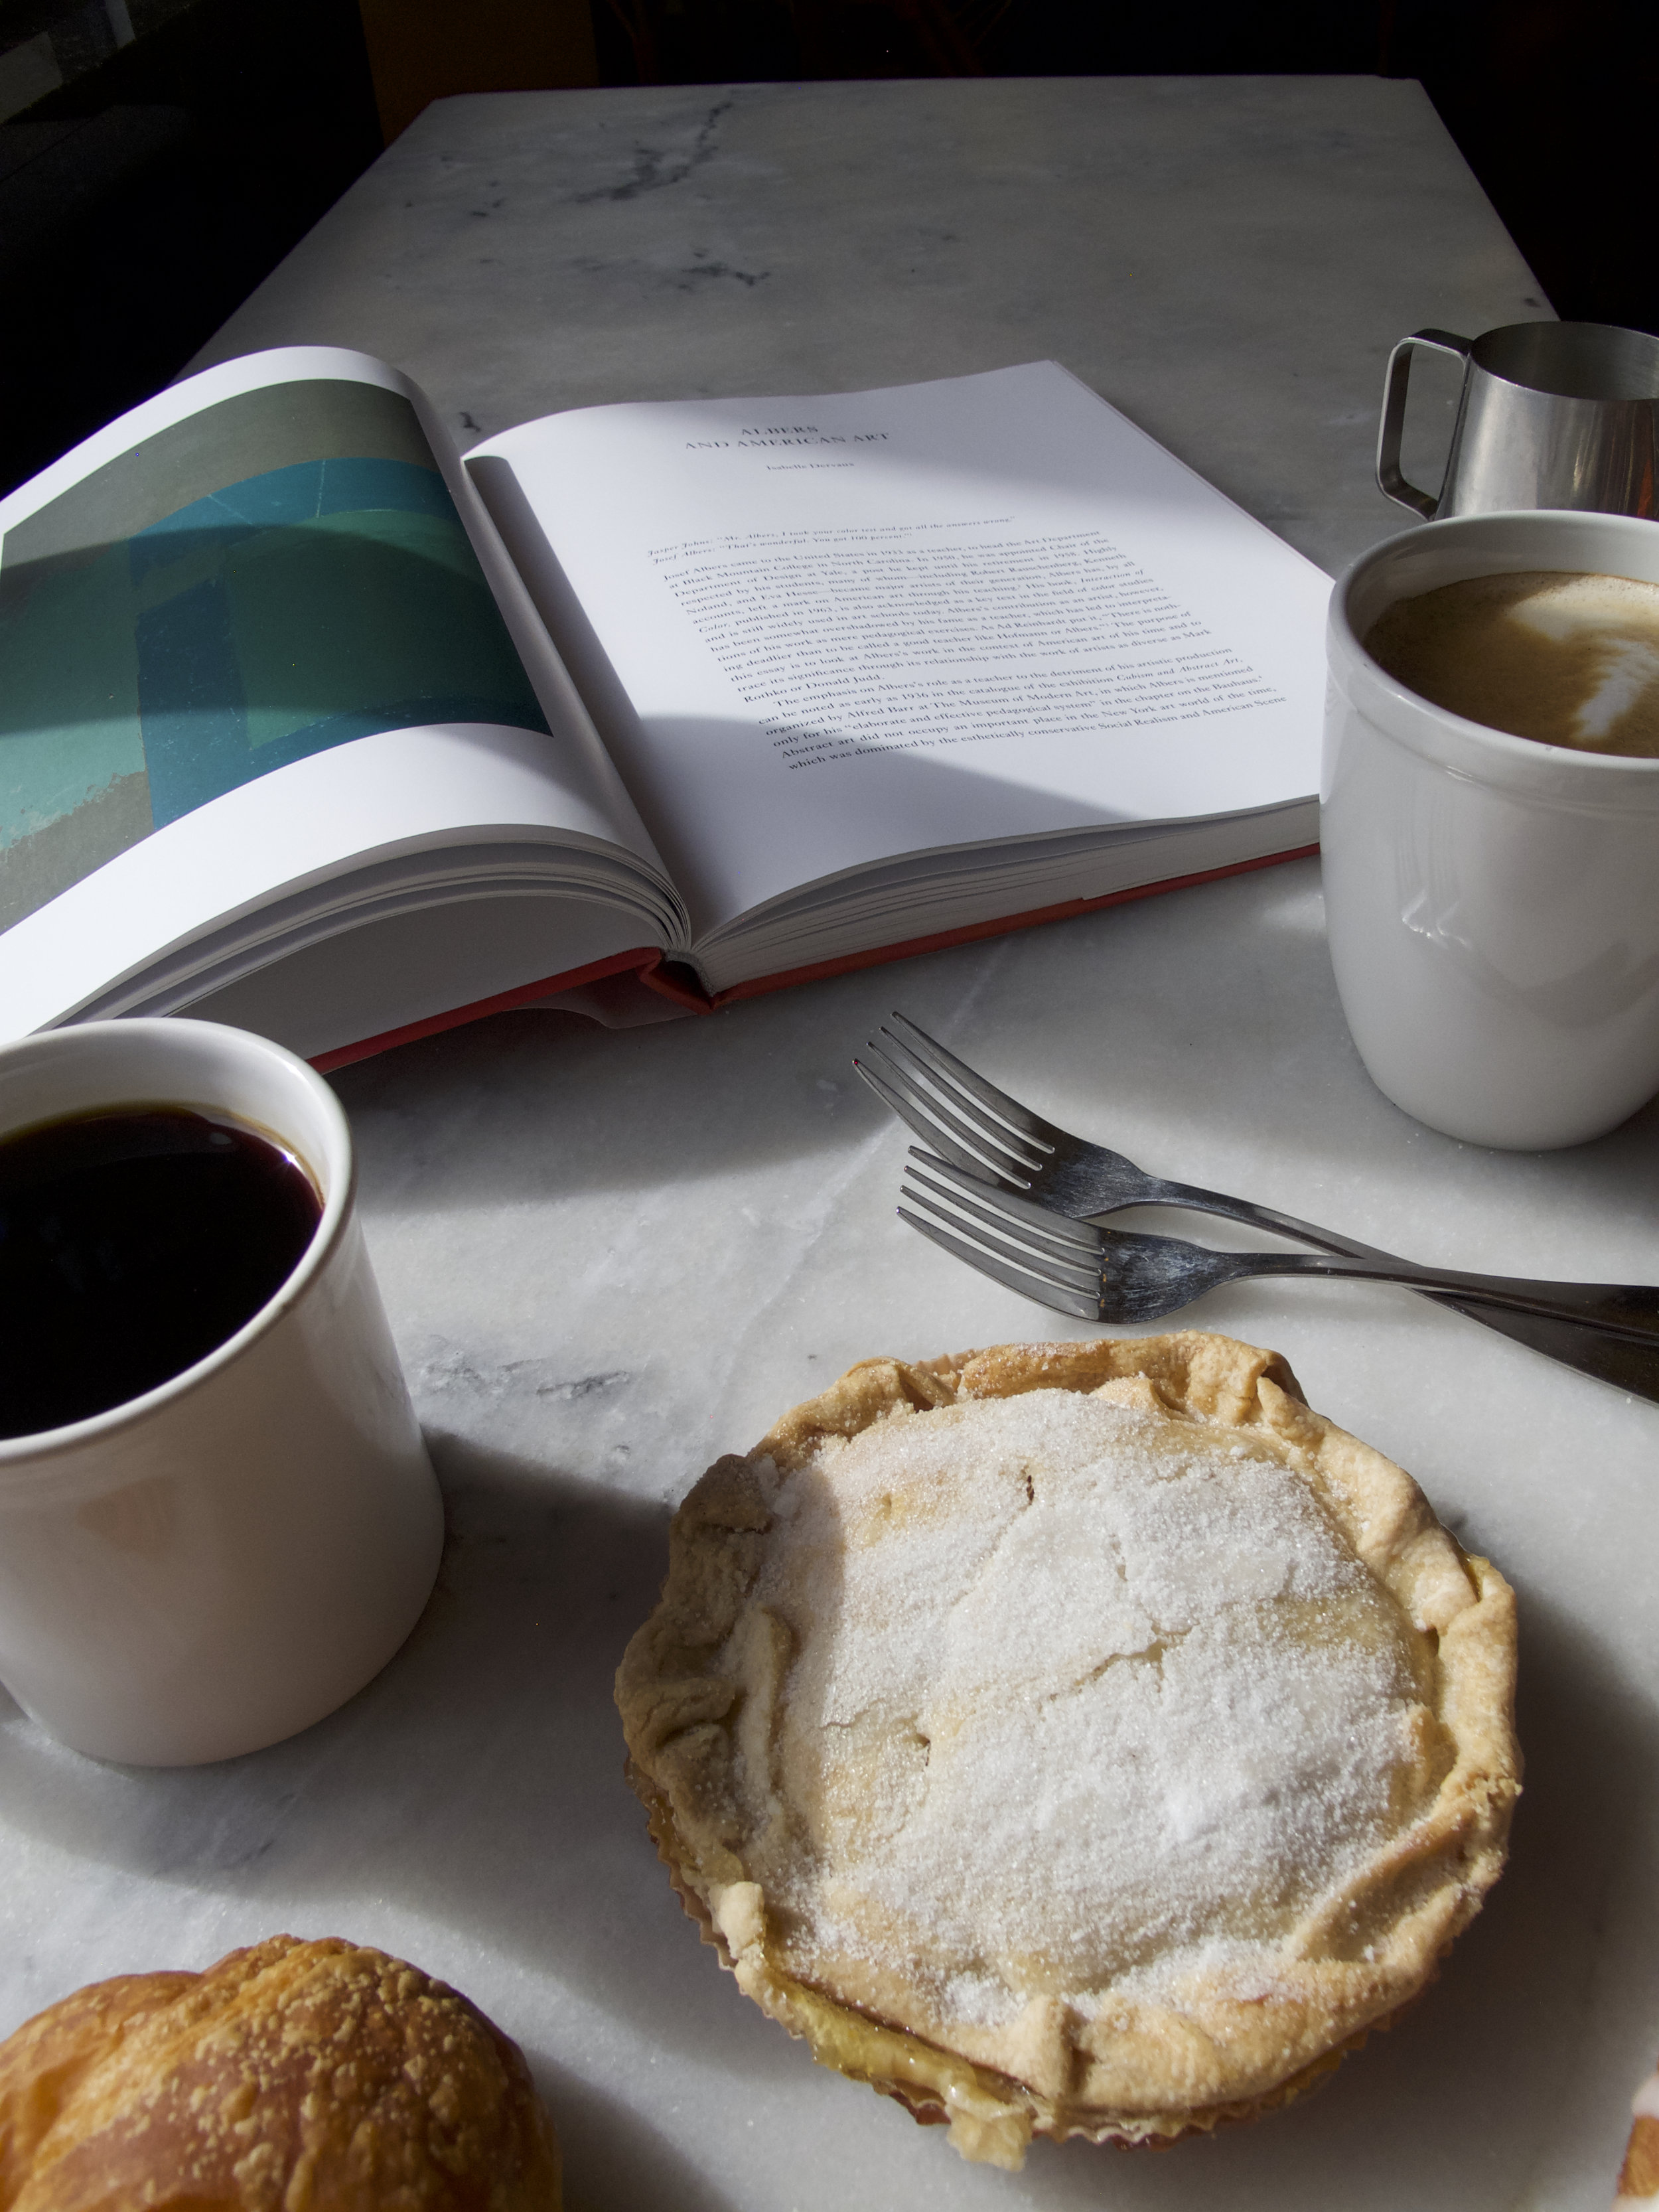 pastries and books 2.jpg